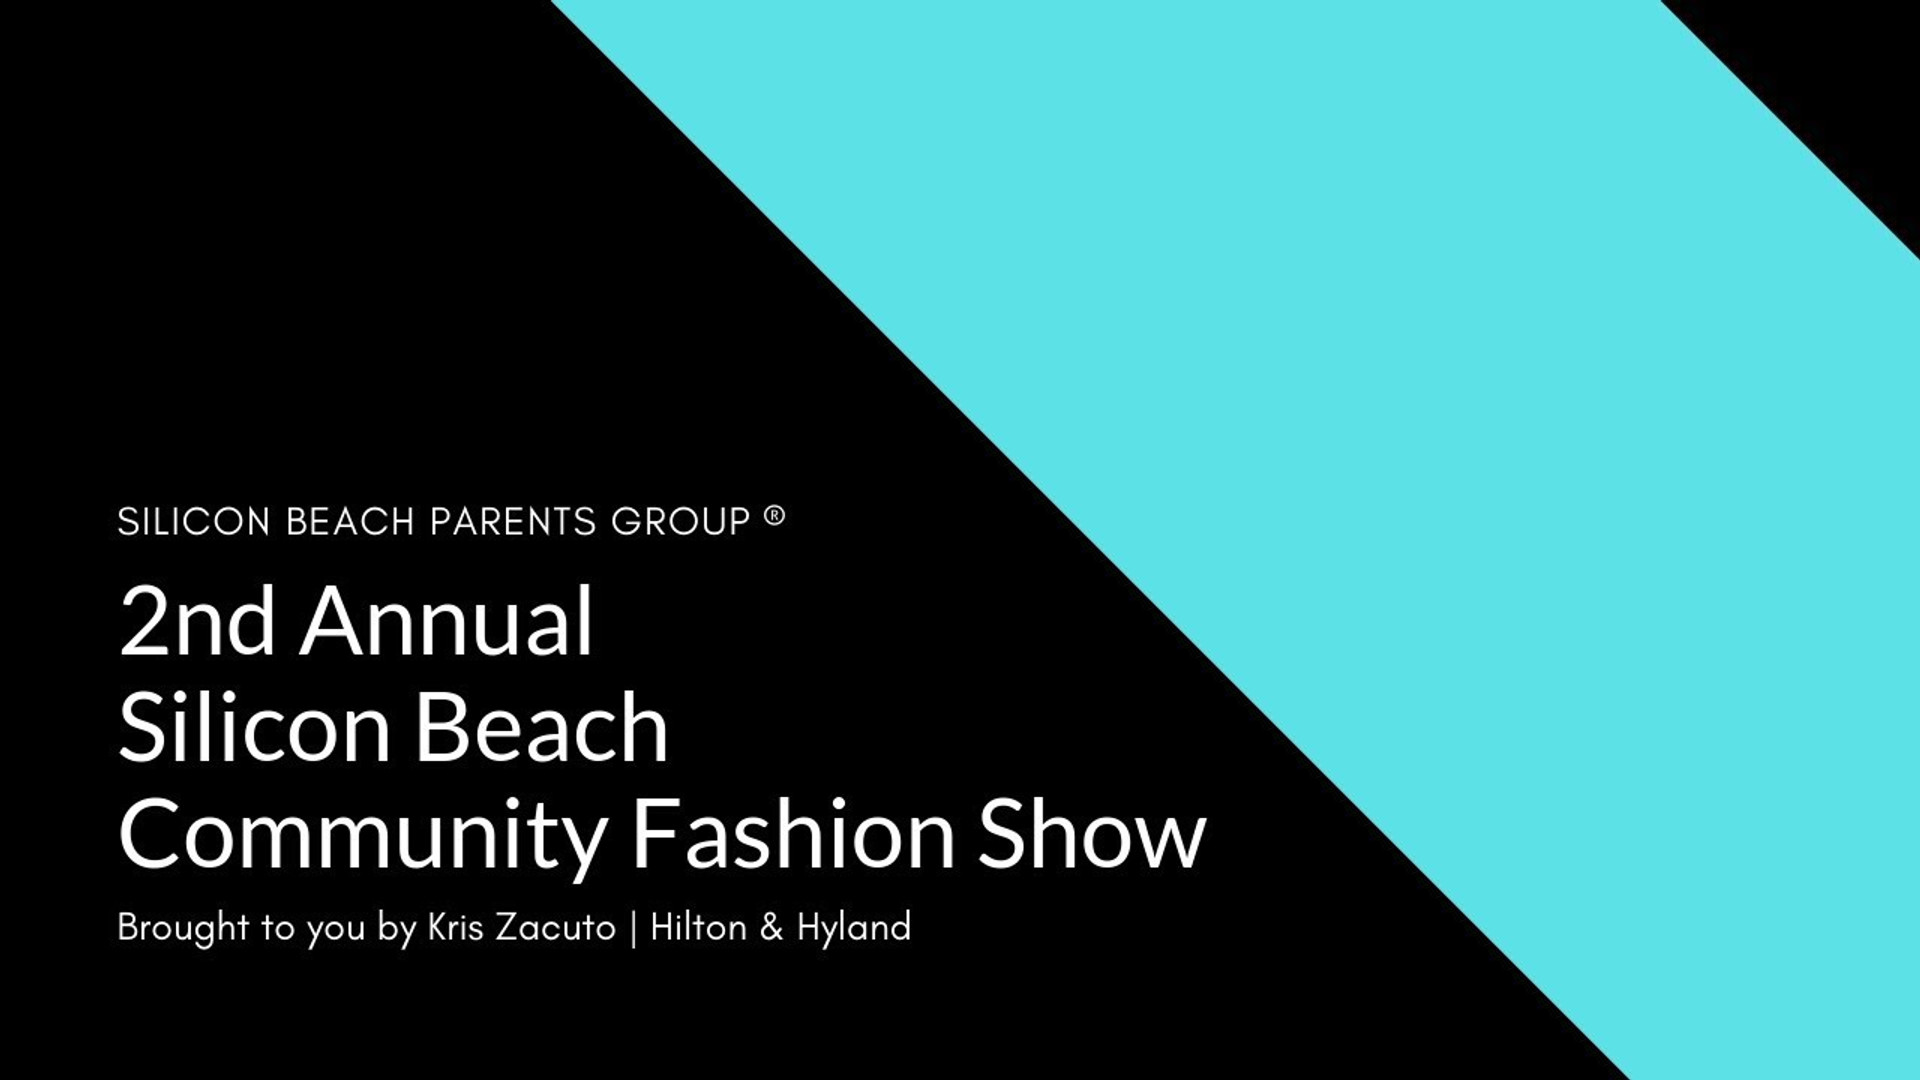 Silicon Beach Fashion Show